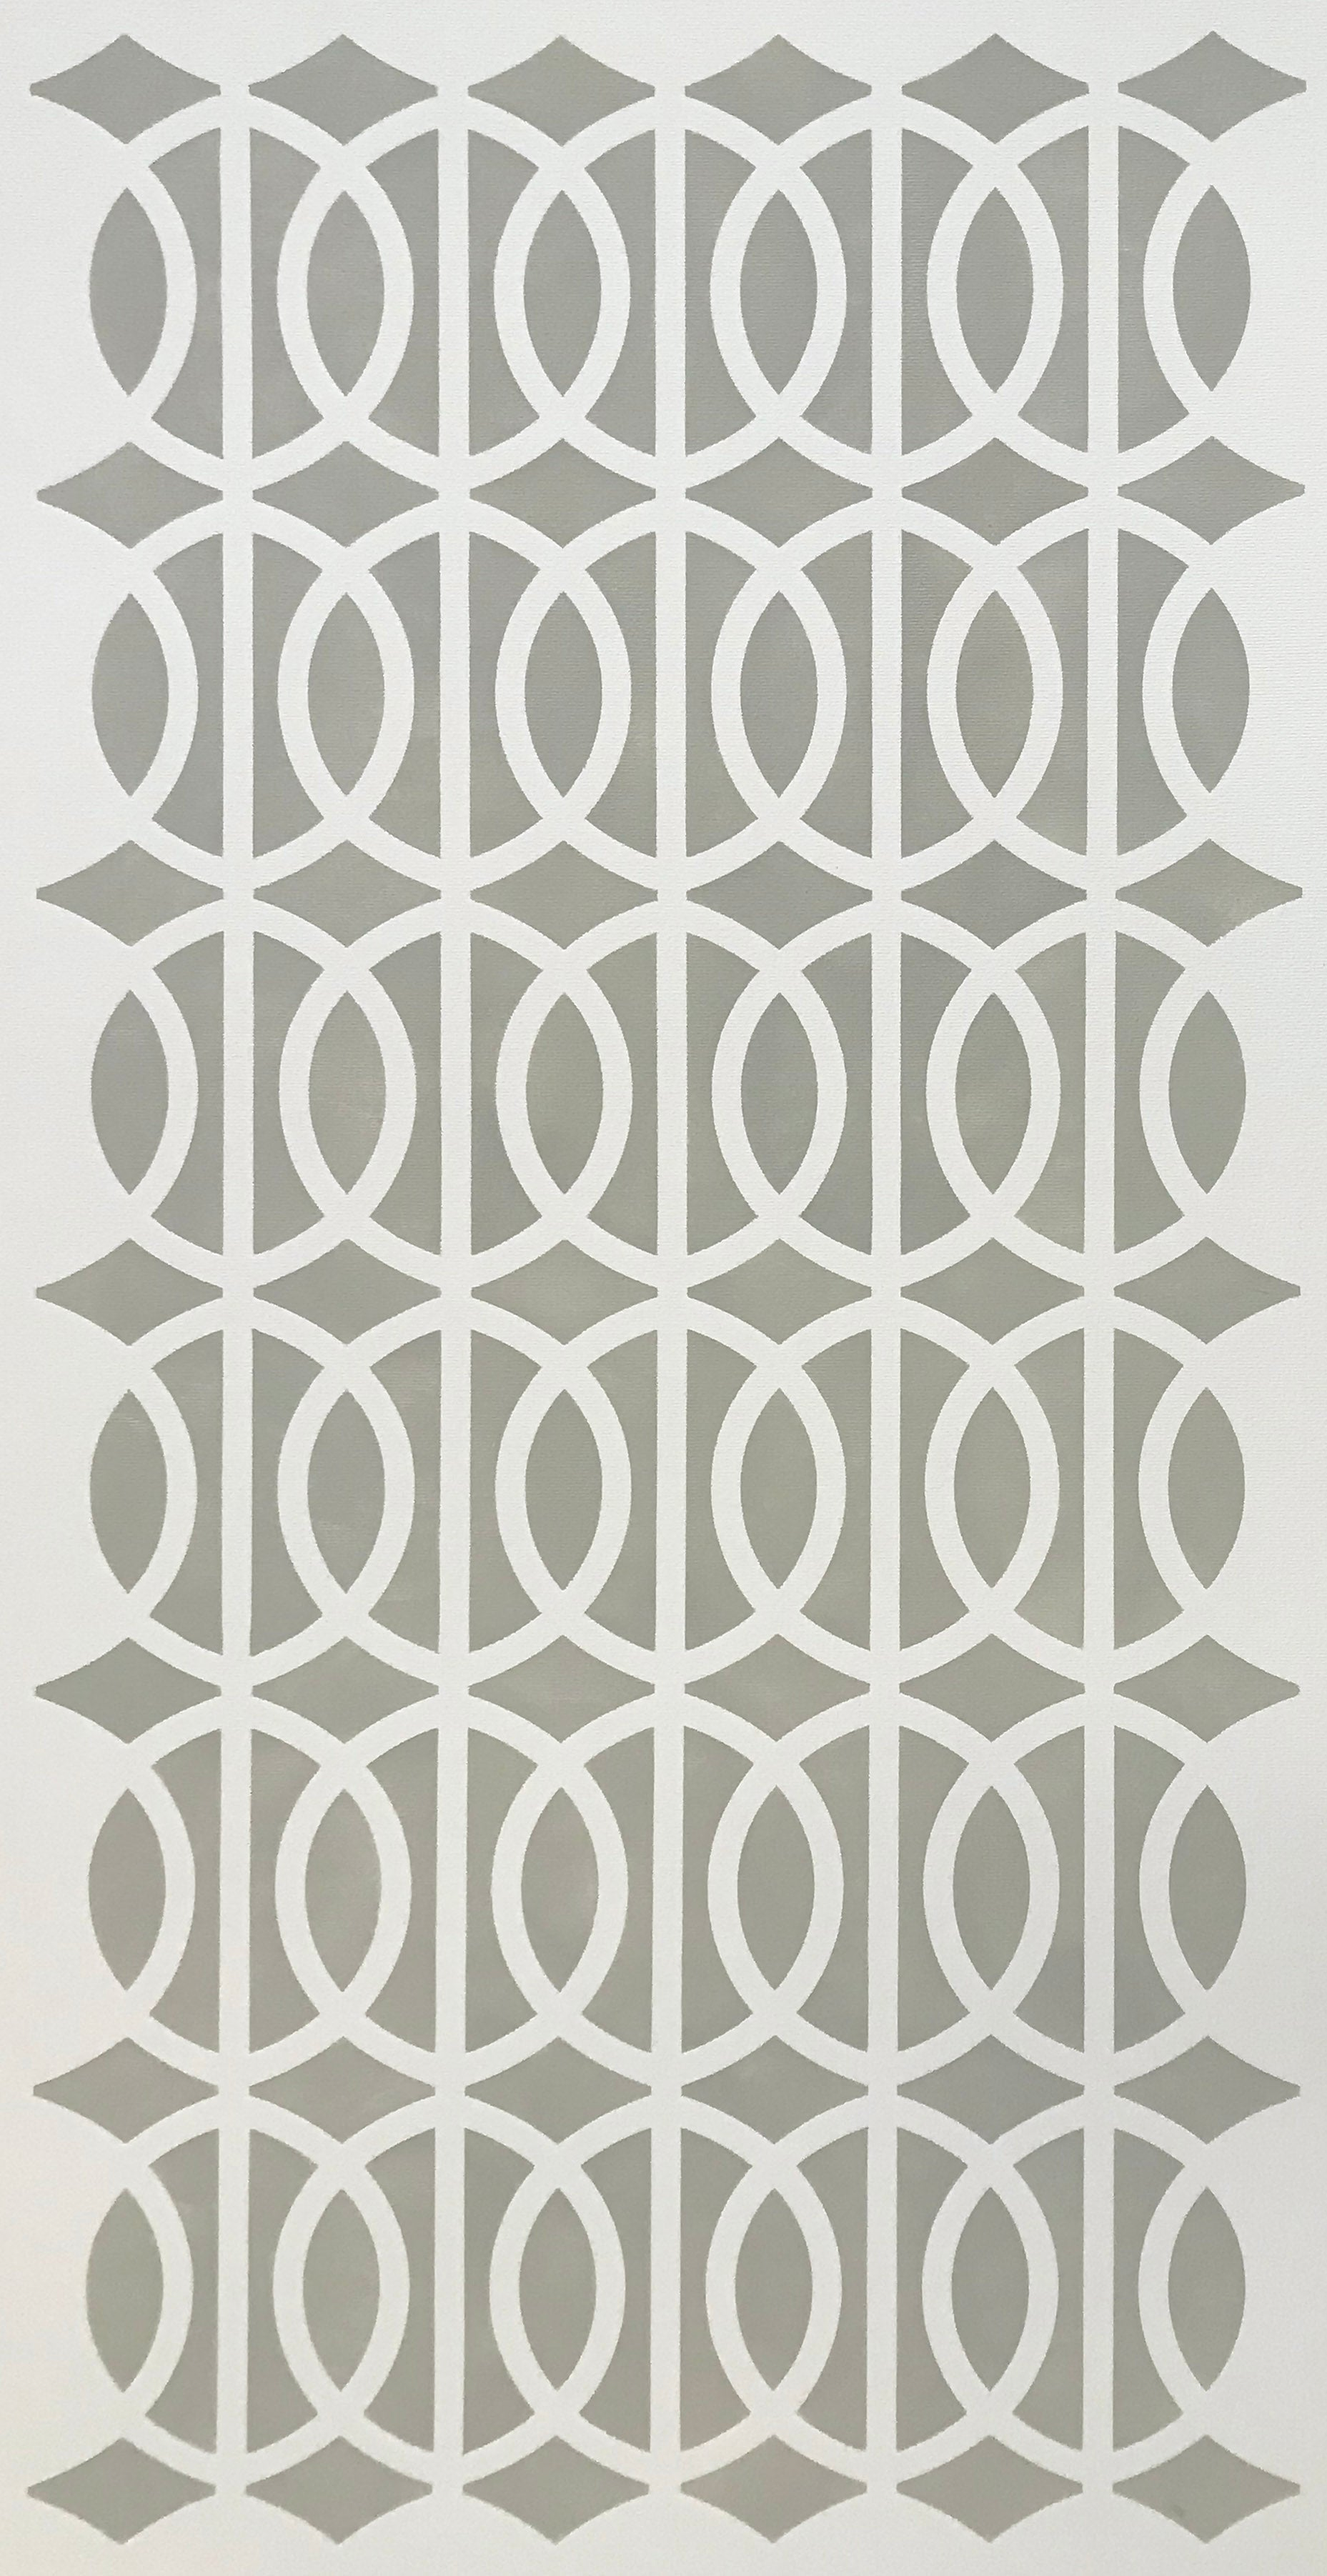 The full image of this simple, elegant floorcloth with its line and circle pattern and linen-like colorway.